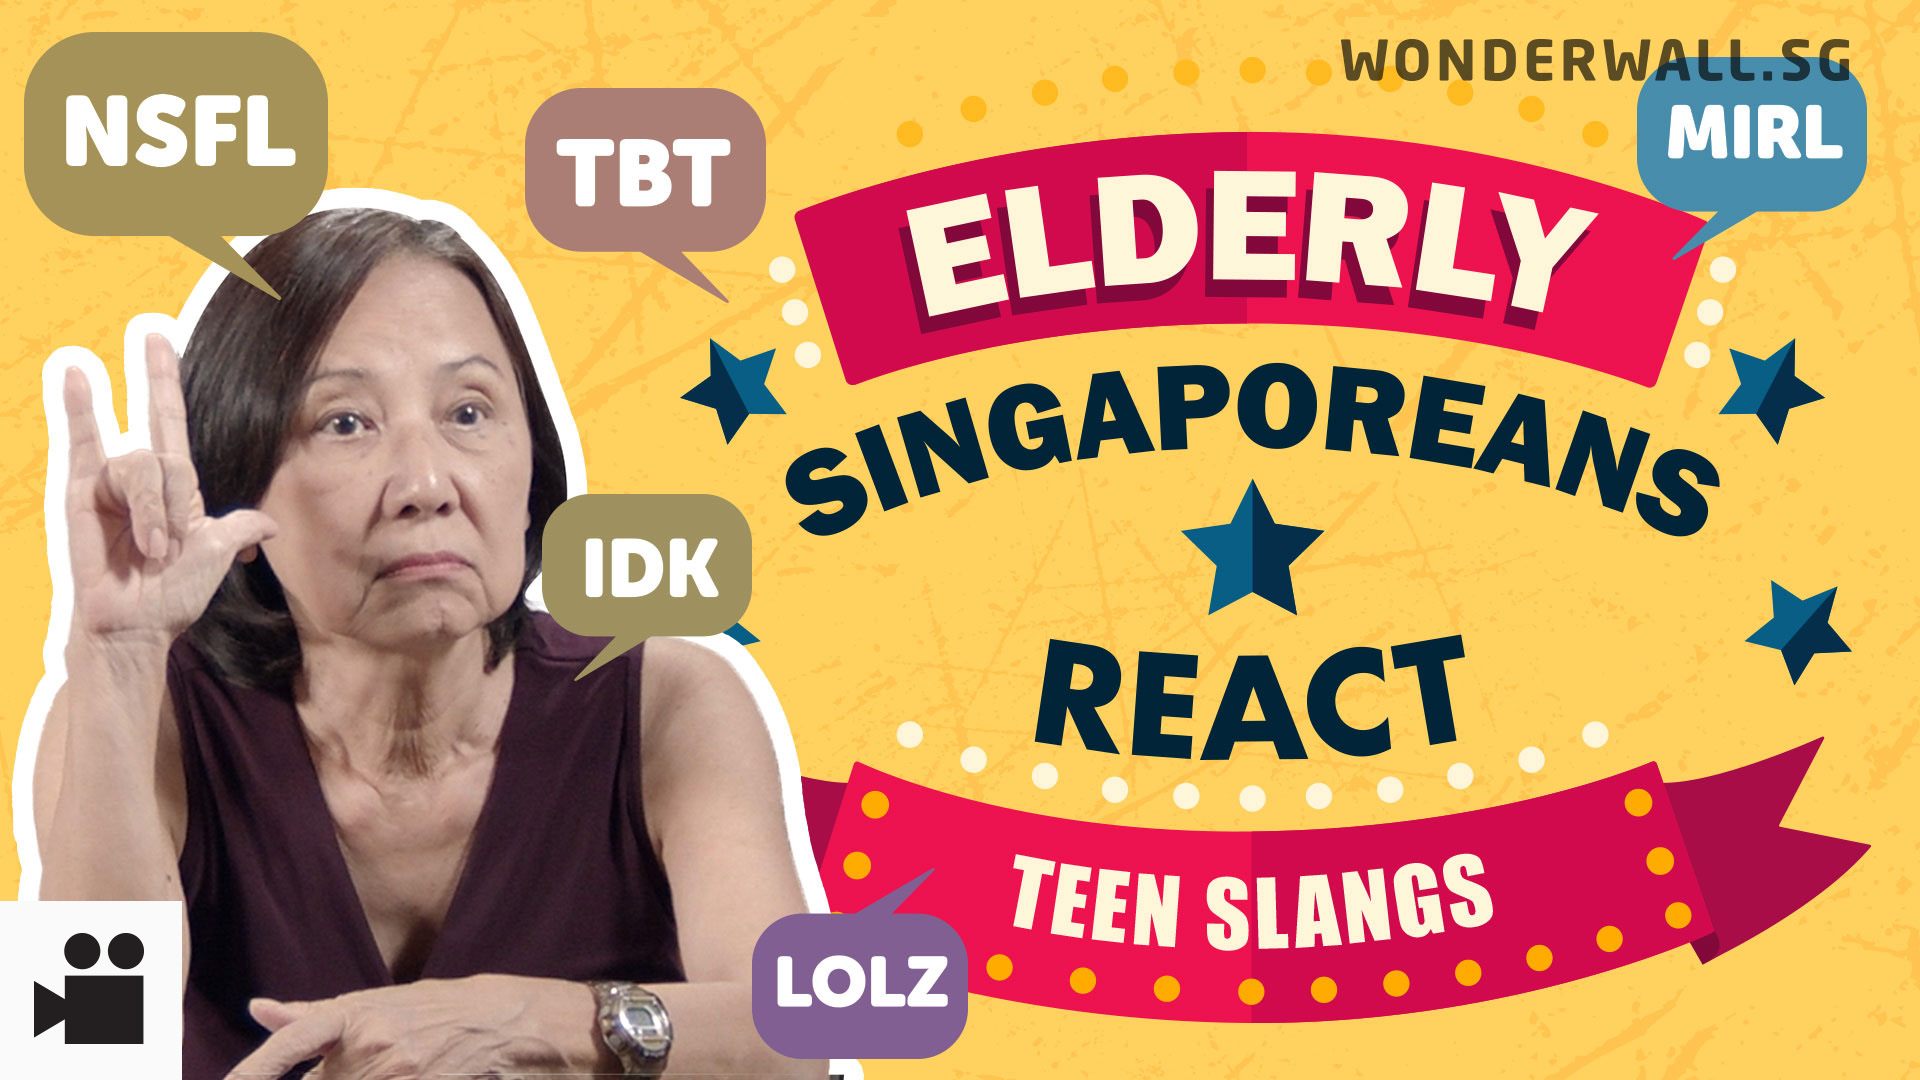 Elderly Singaporeans React: Teen Slang